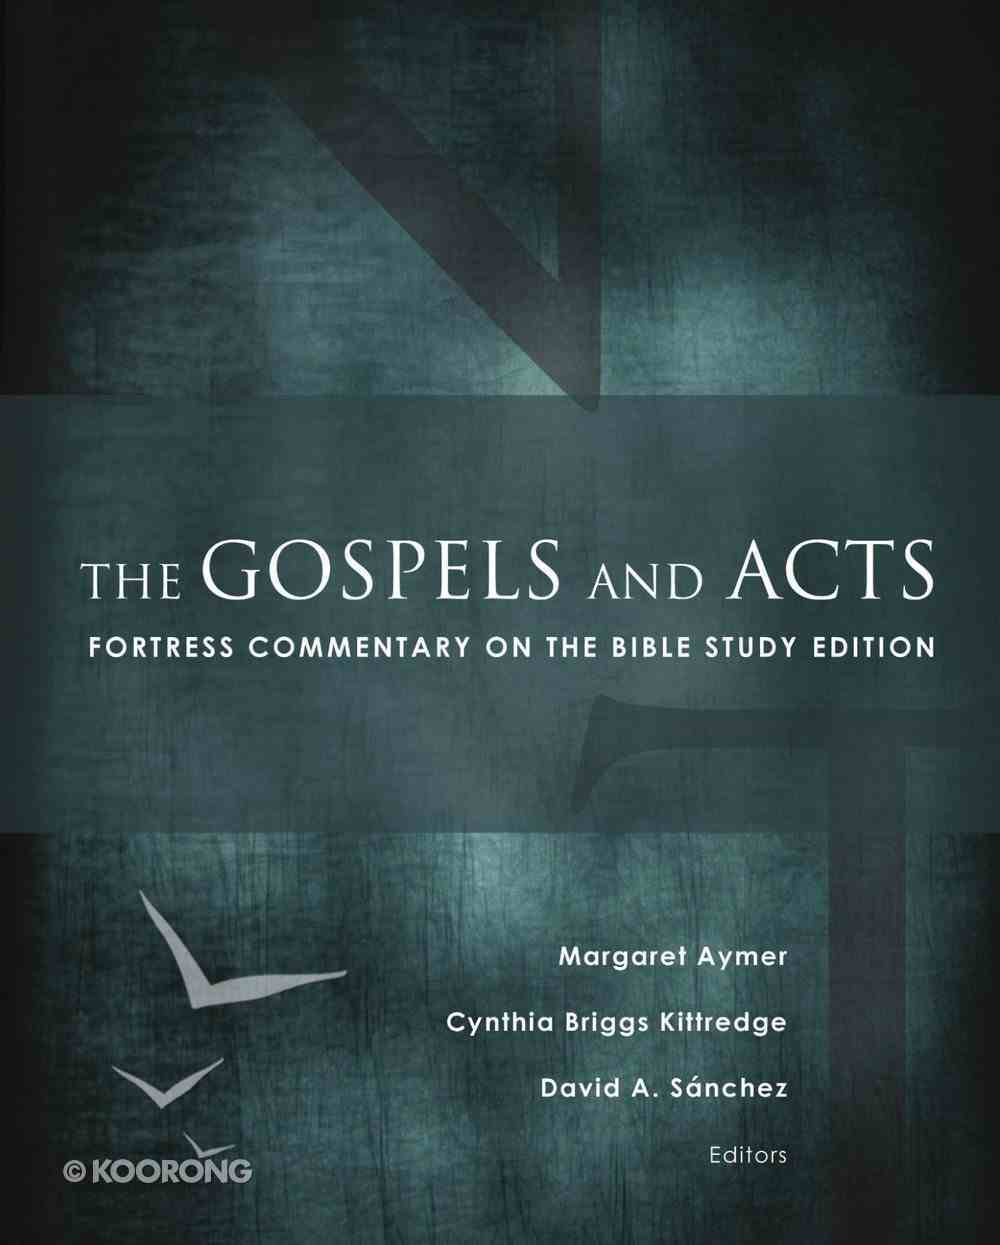 The Gospels and Acts (Fortress Commentary On The Bible Series) eBook